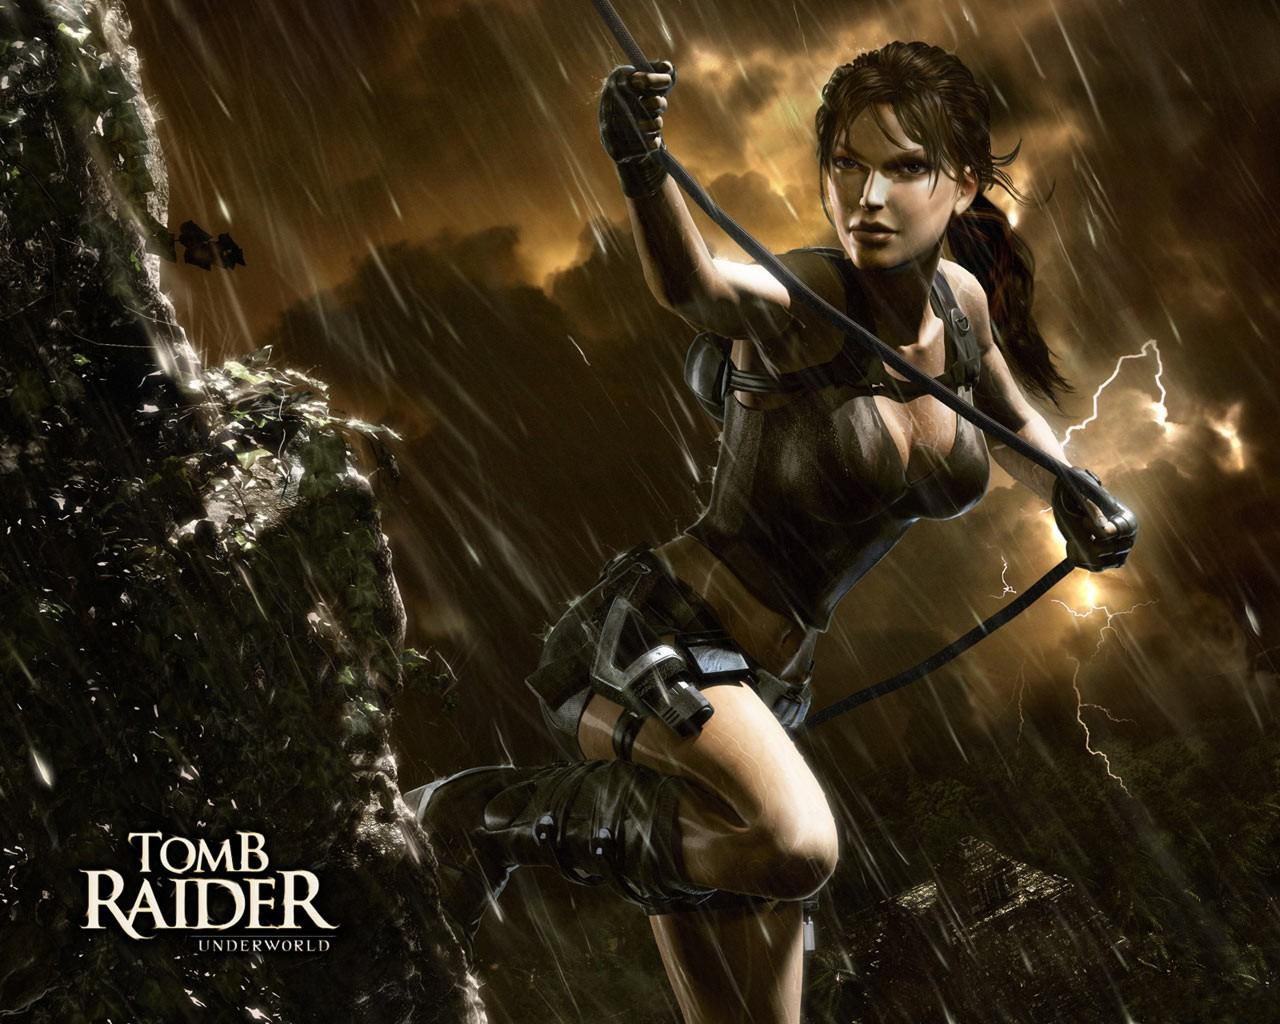 Shadow of the Tomb Raider - tombraider.square-enix-games.com